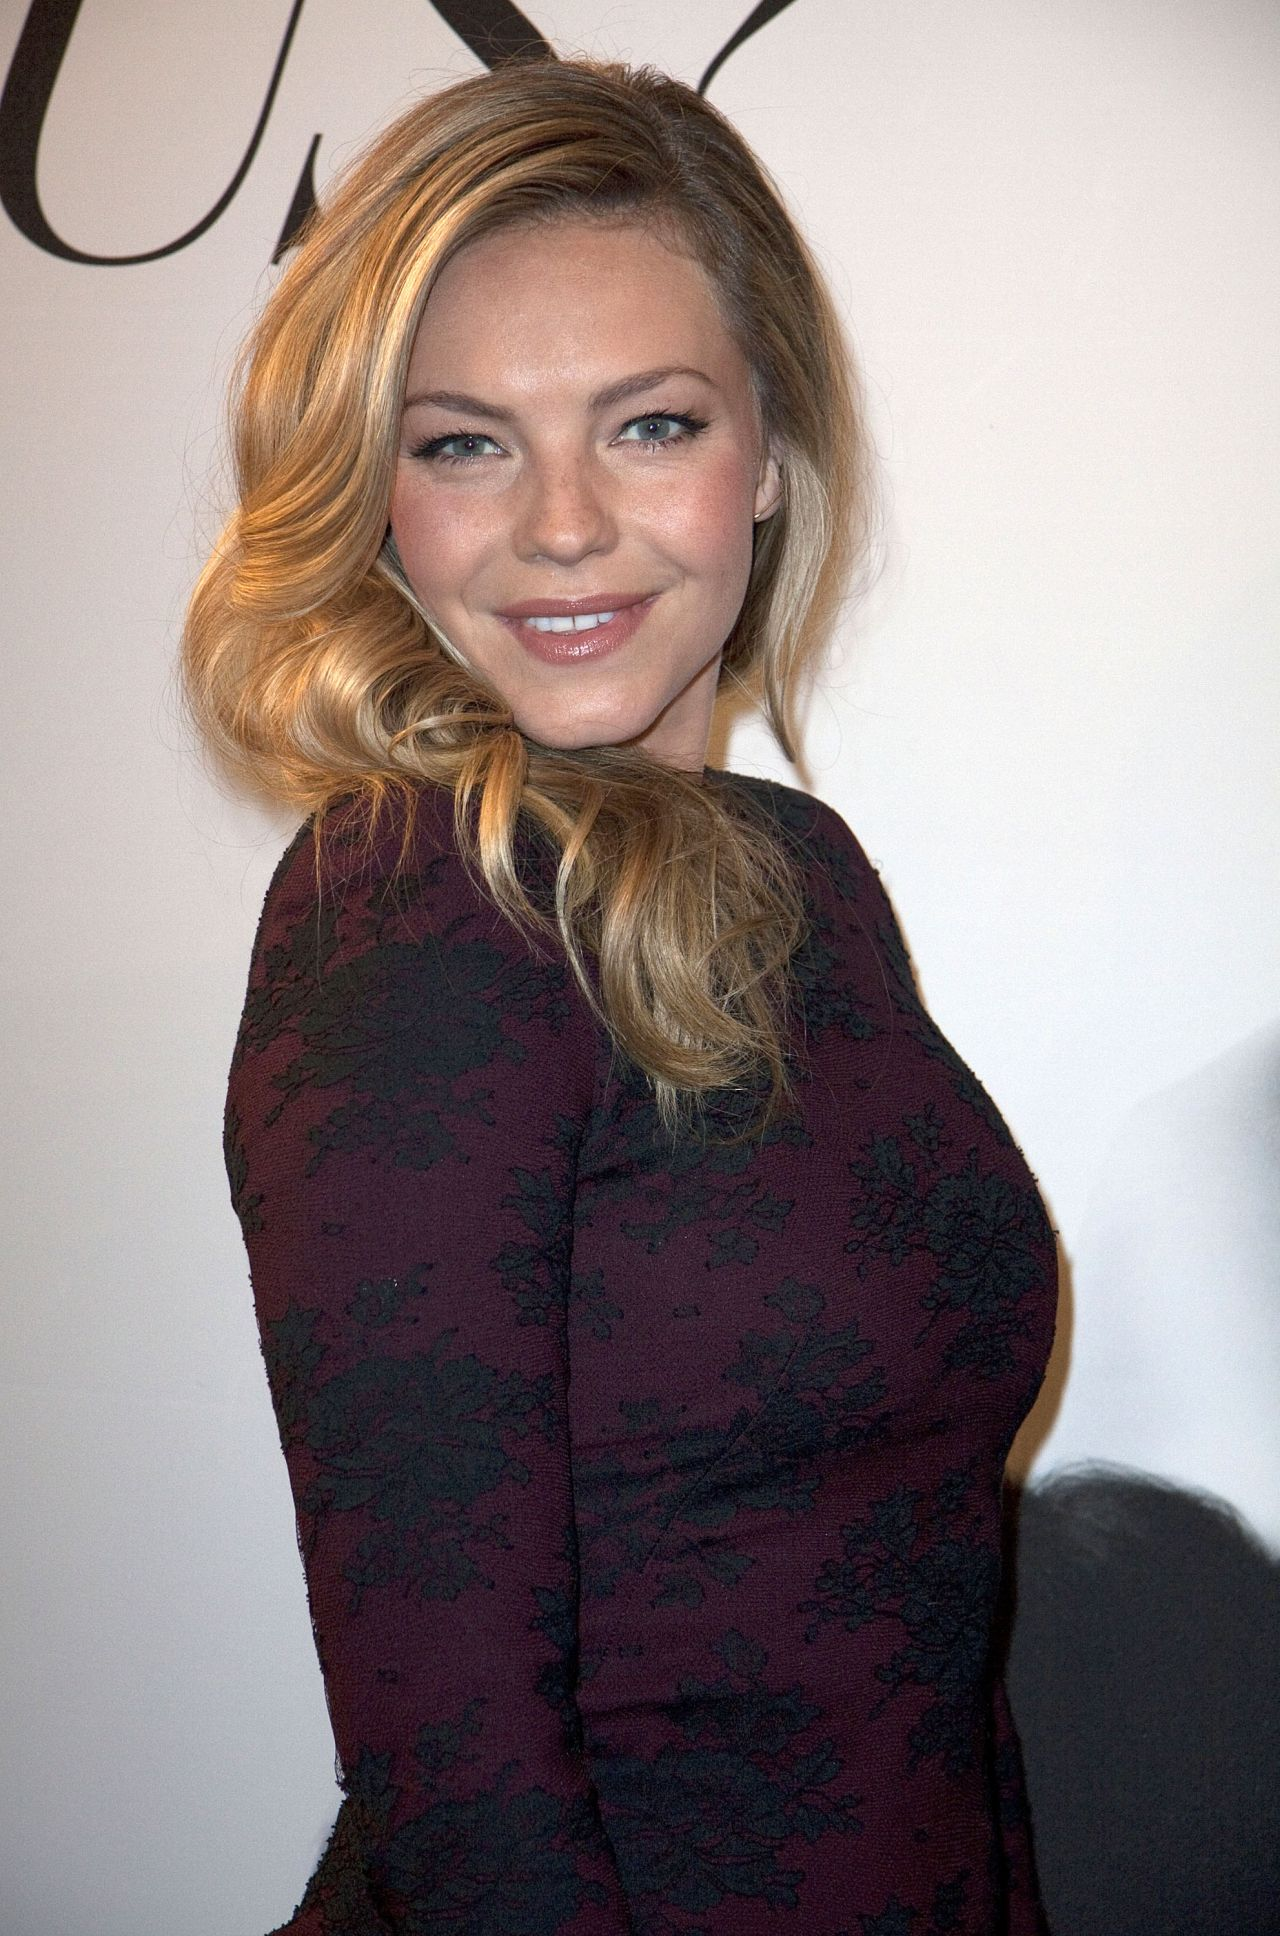 eloise mumford height